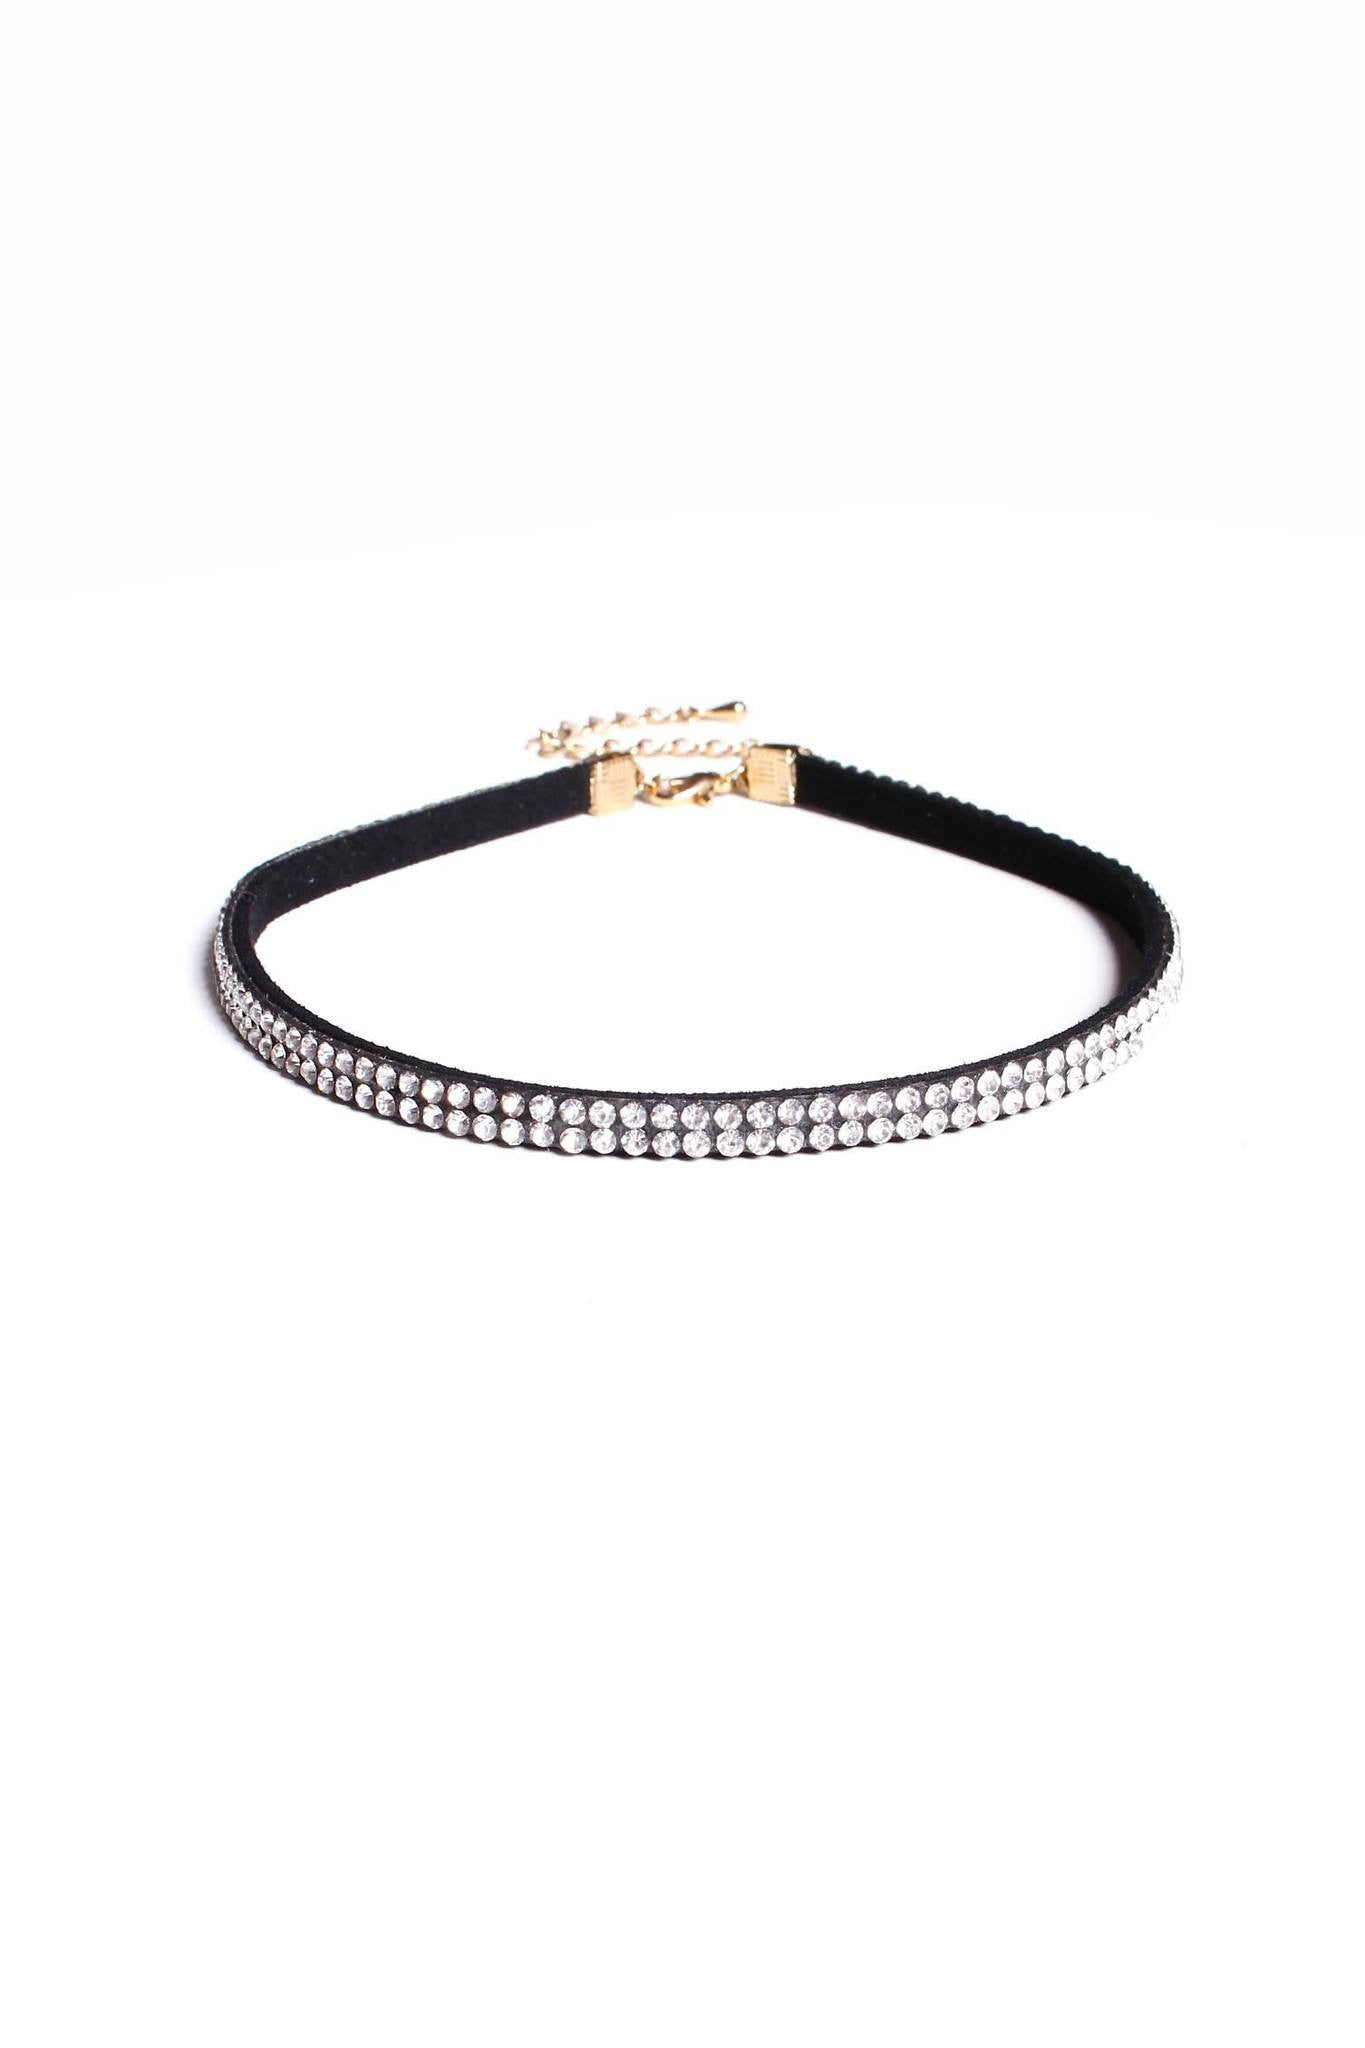 Lovers Lane Rhinestone Choker - Black